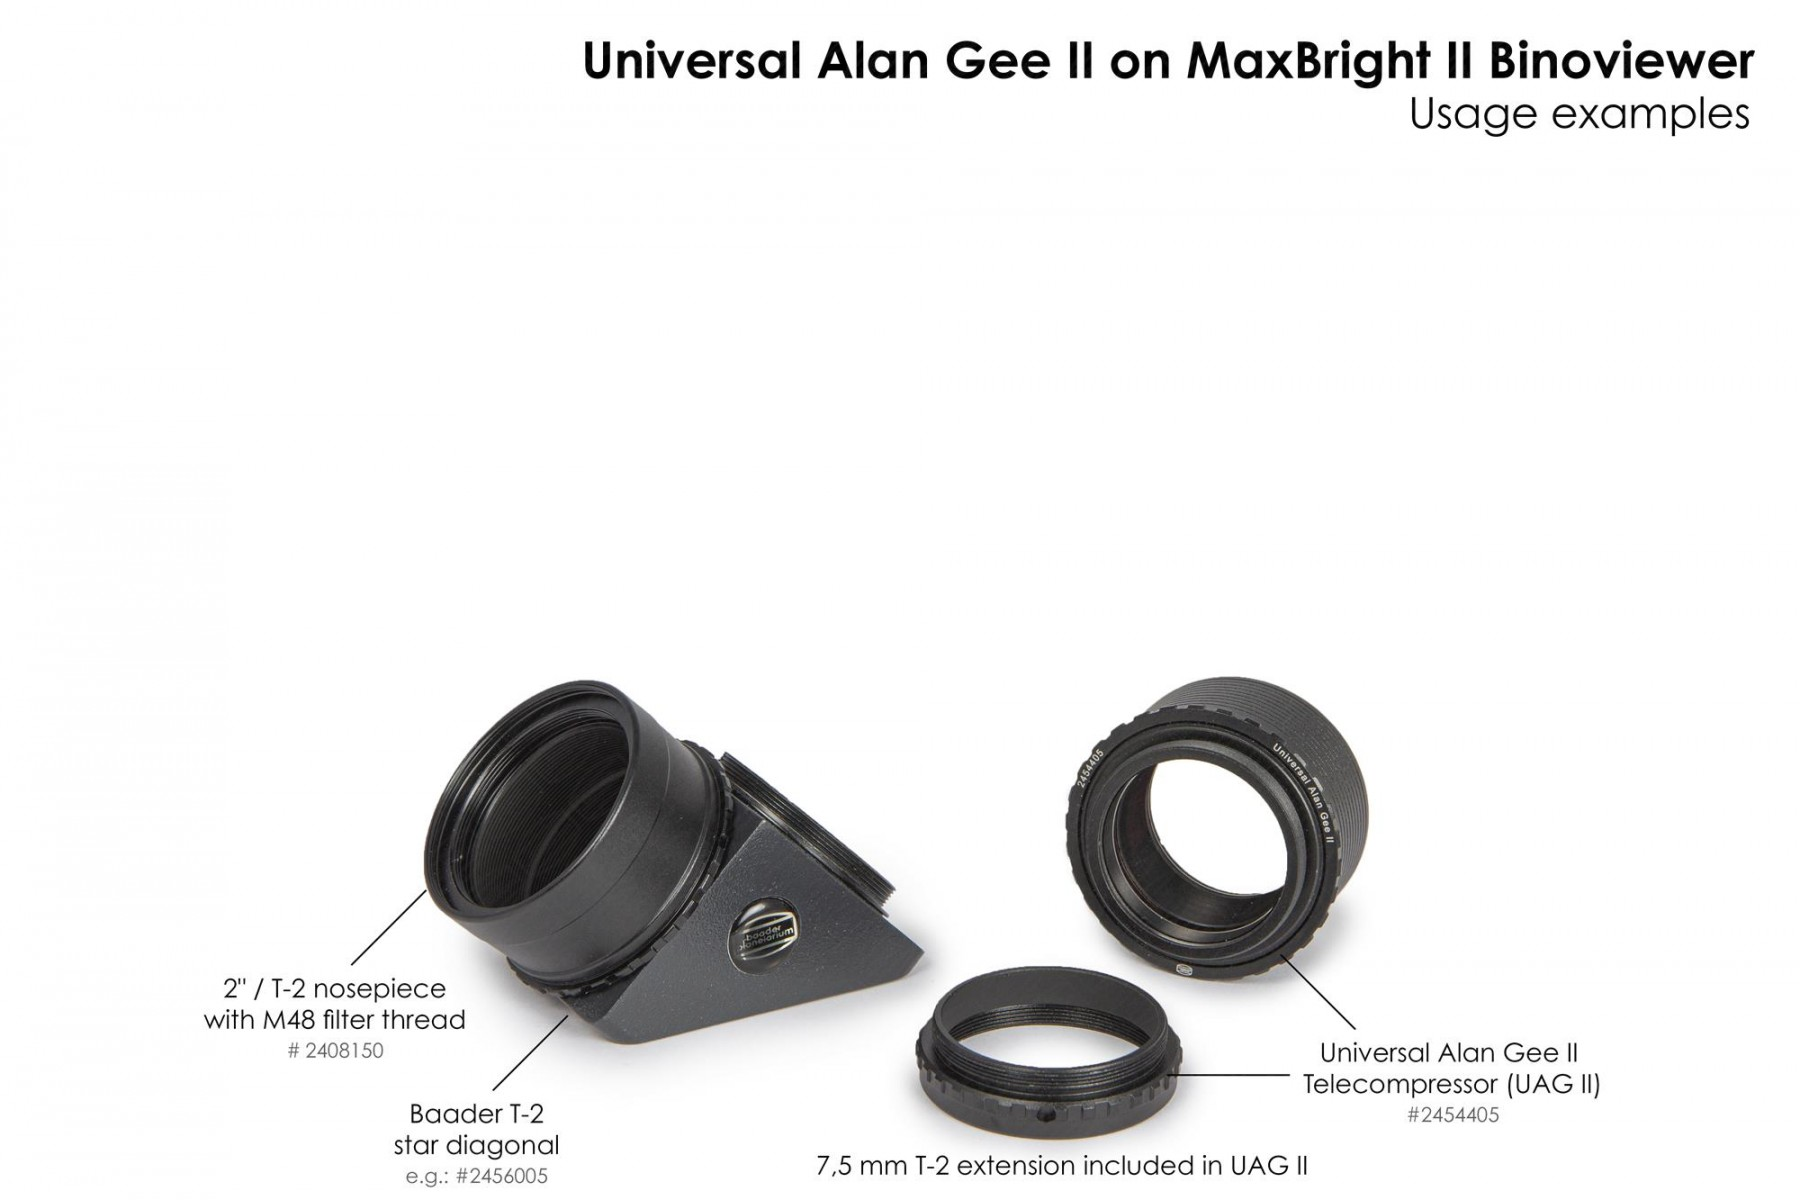 "Application image: Universal Alan Gee II - Maxbright SetUp 1 with #2454405 Universal Alan Gee II #2454405,  2"" / T-2 nosepiece with M48 filter thread #2408150 and T-2 Star diagonal #2456005"